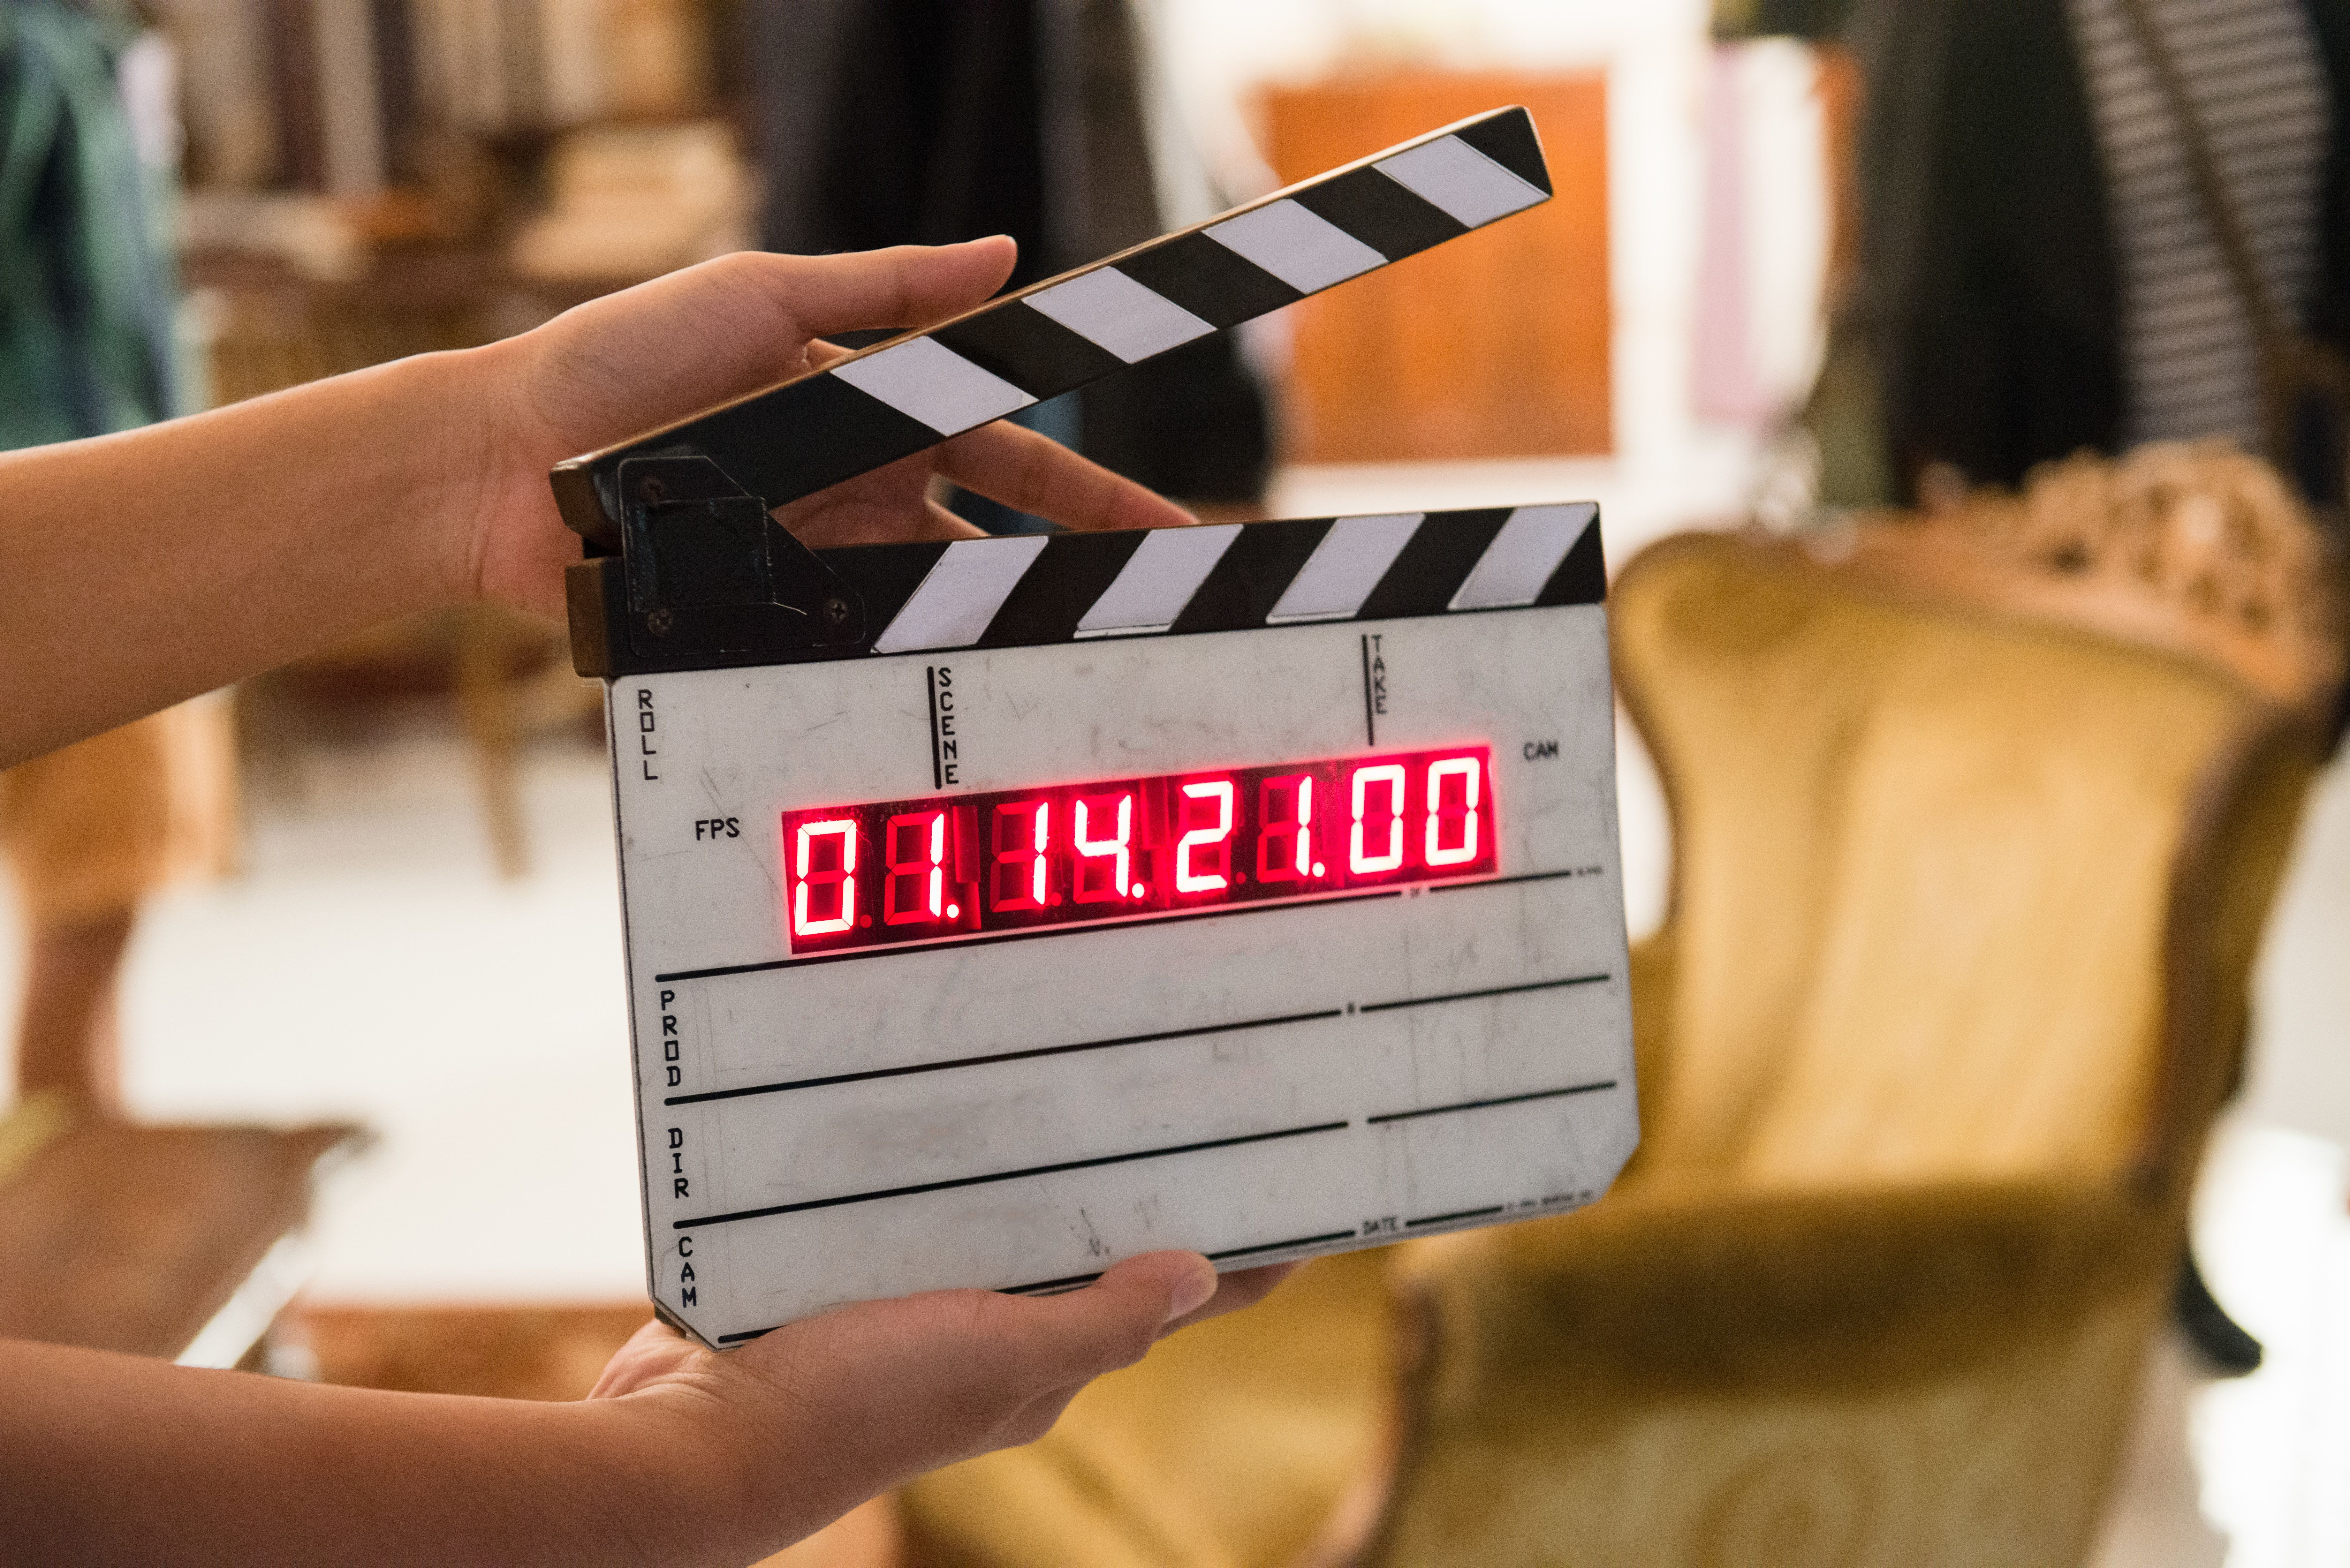 Movie production digital clapper board